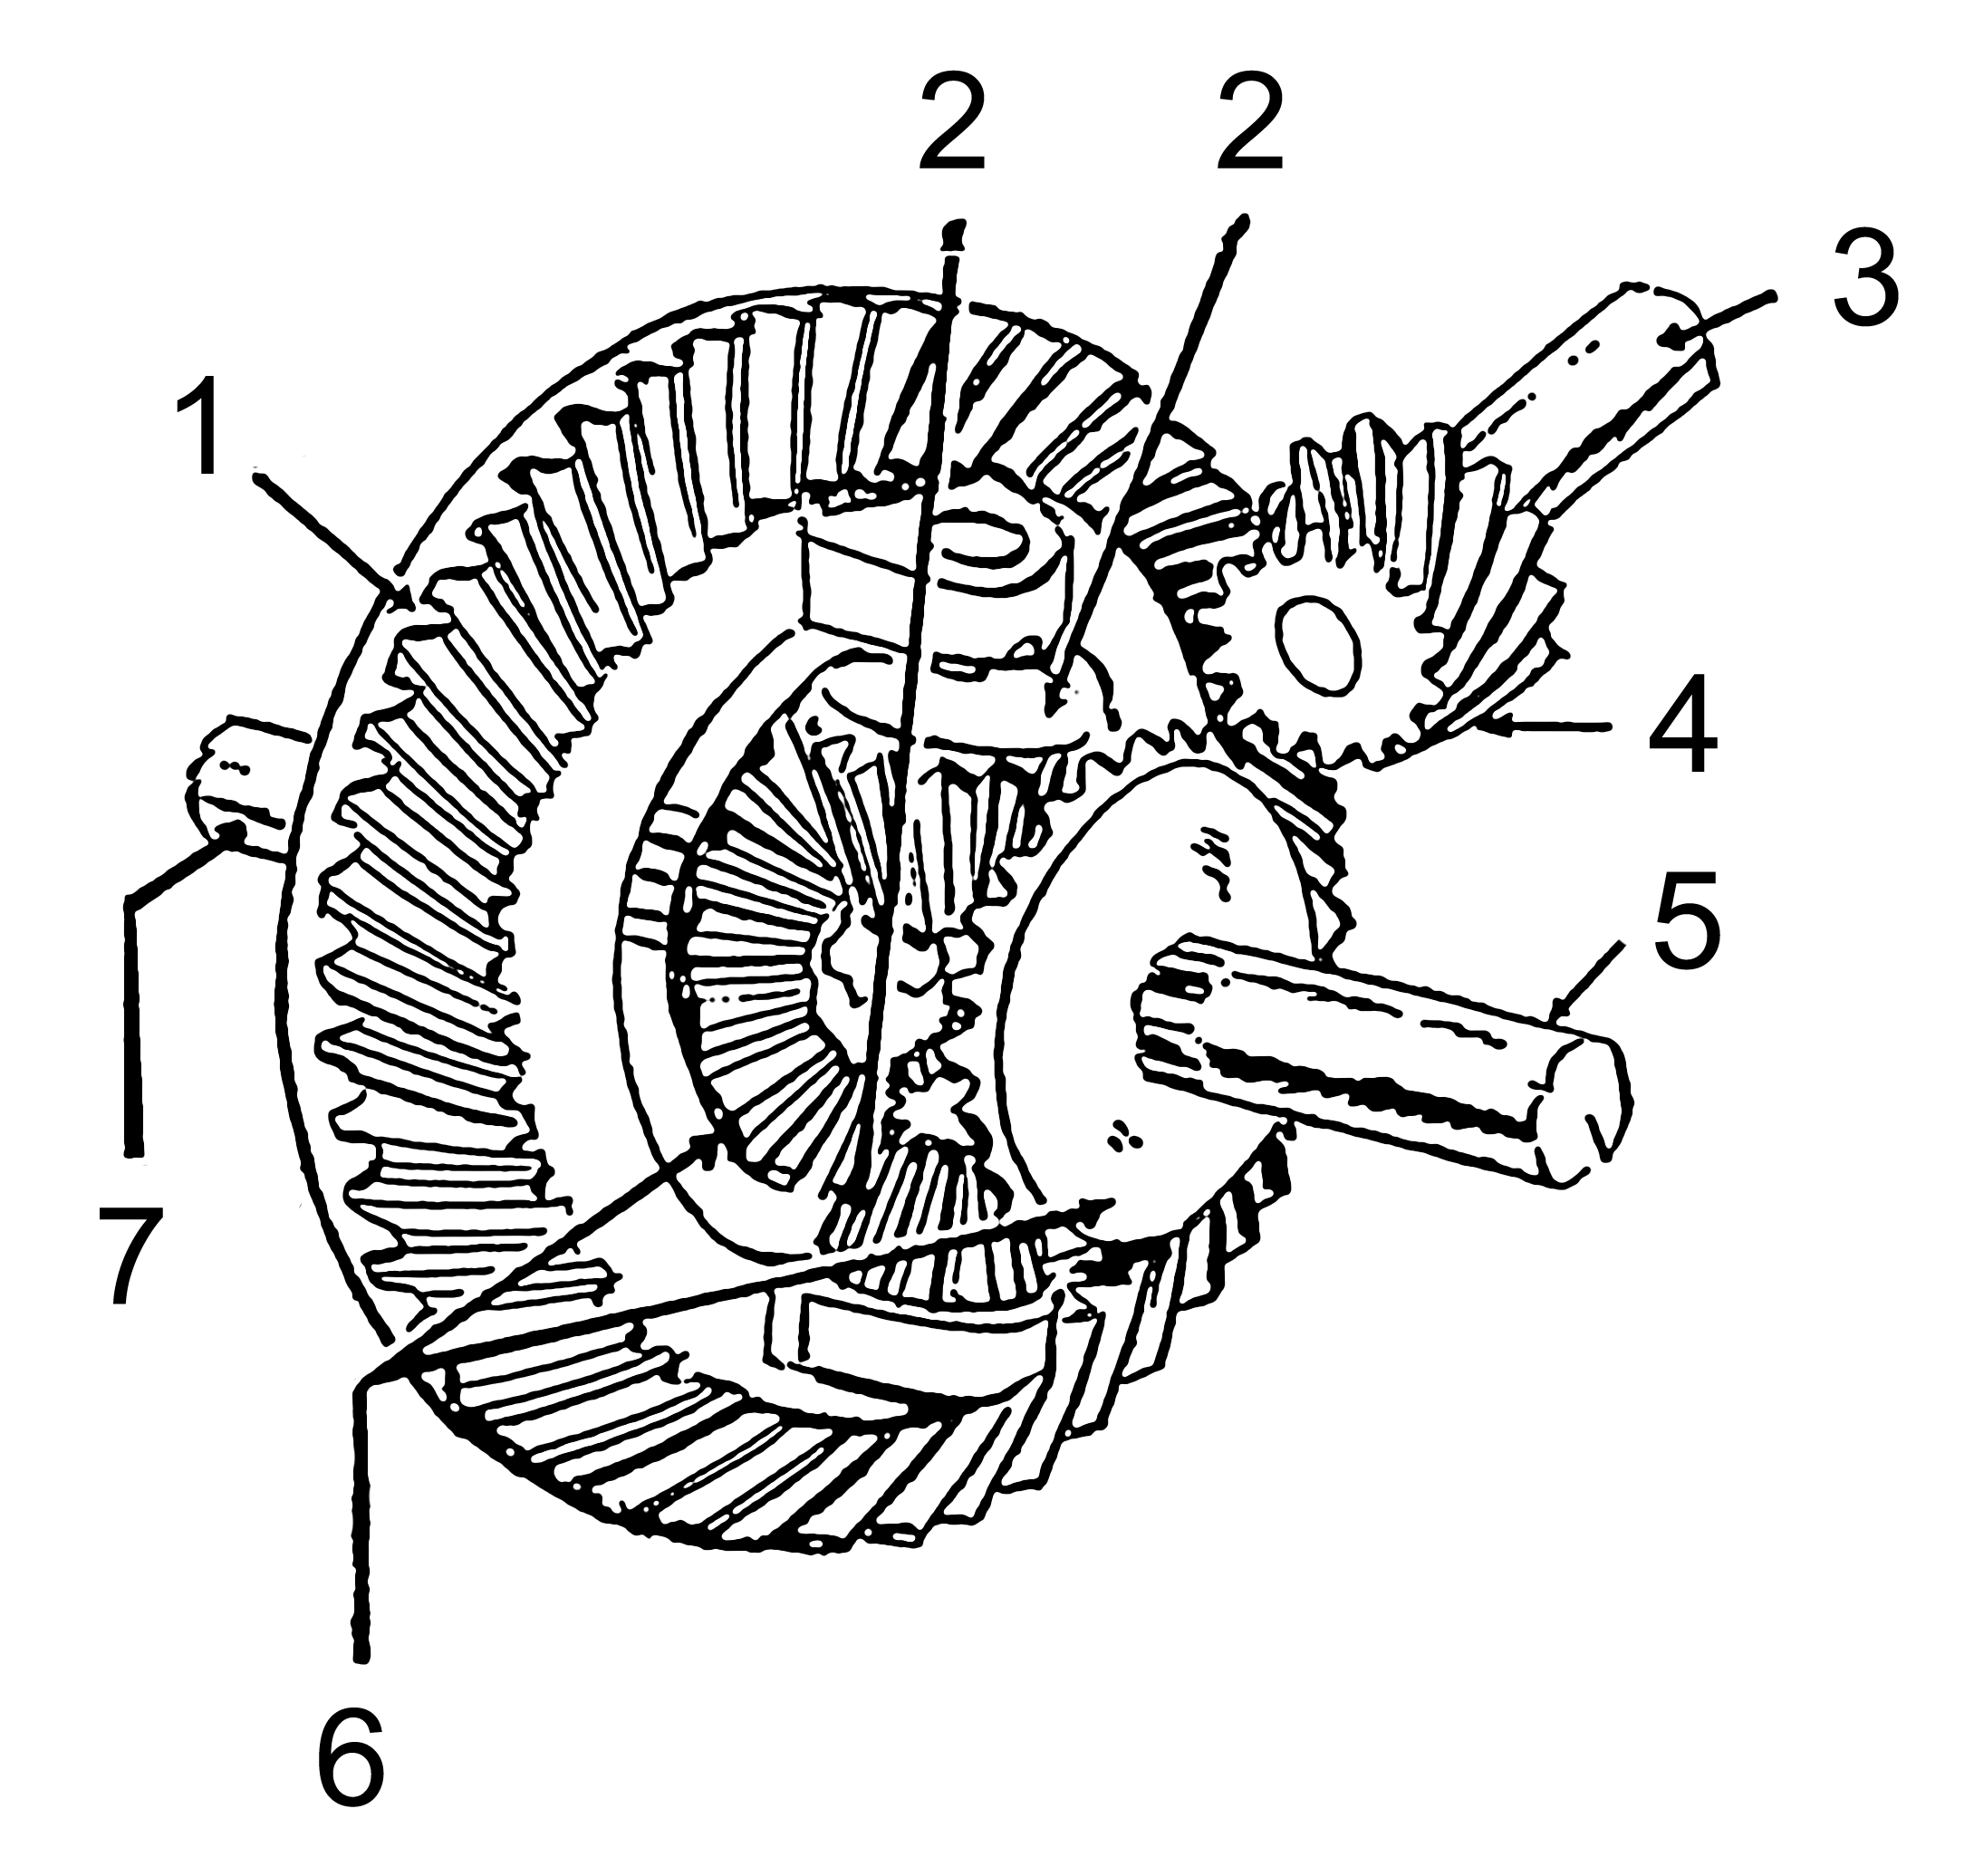 Differential (mechanical device) - Simple English Wikipedia